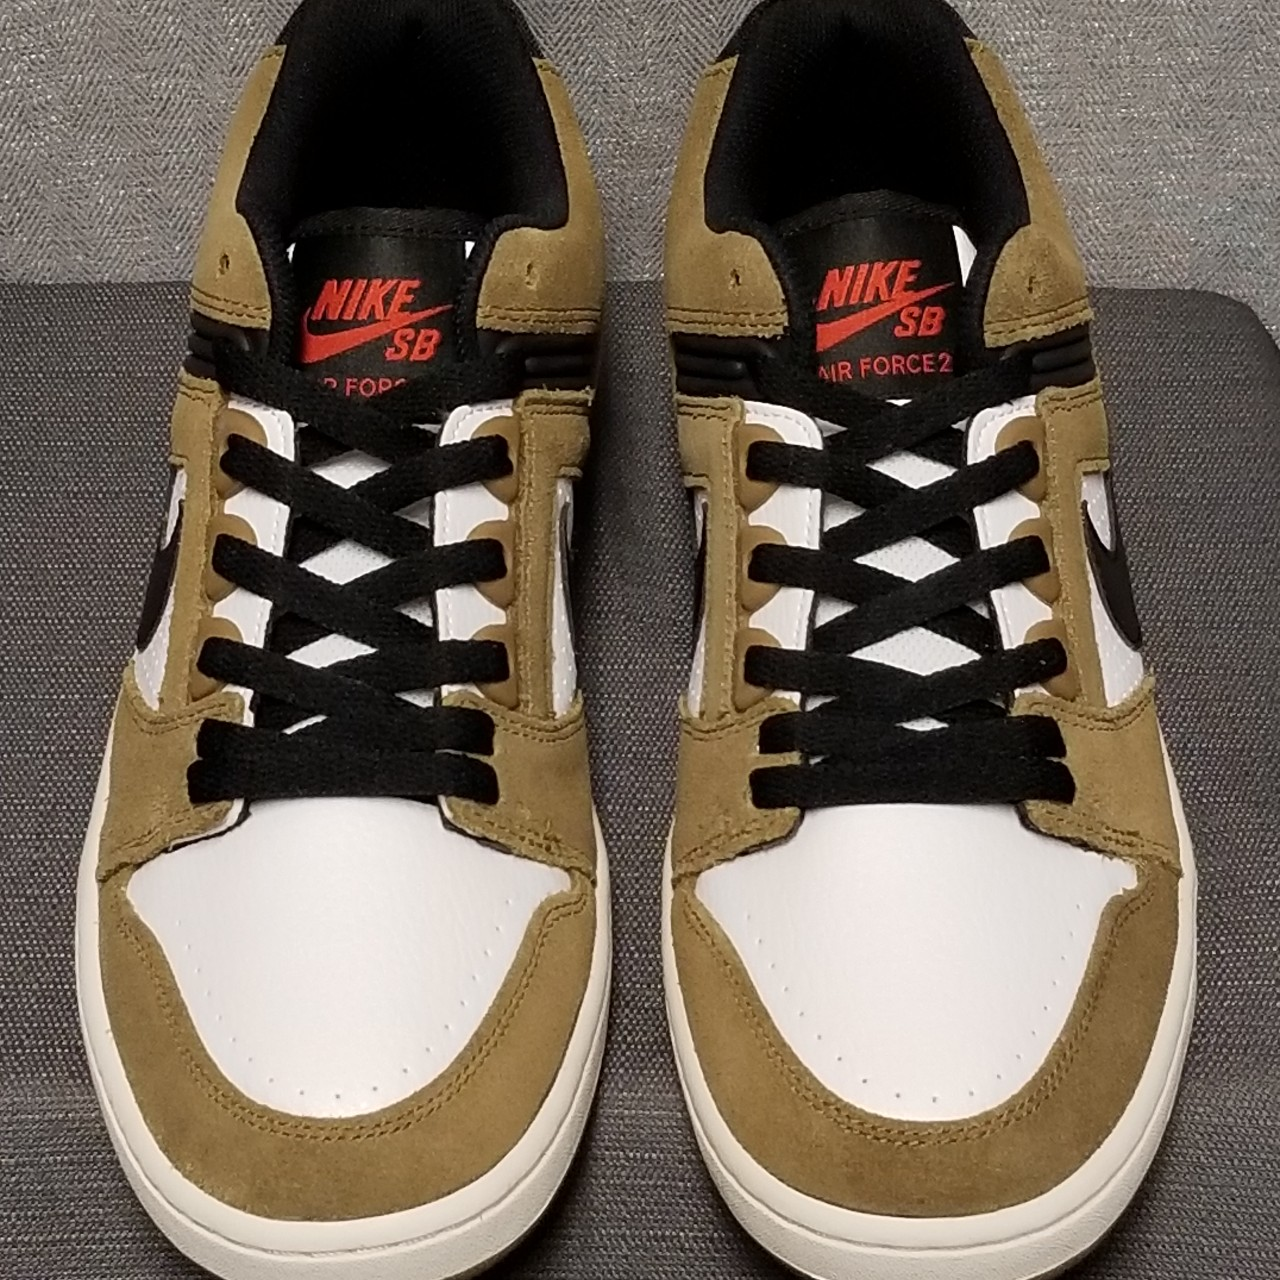 NIKE SB Air Force II Low Escape Lichen Brown White Depop